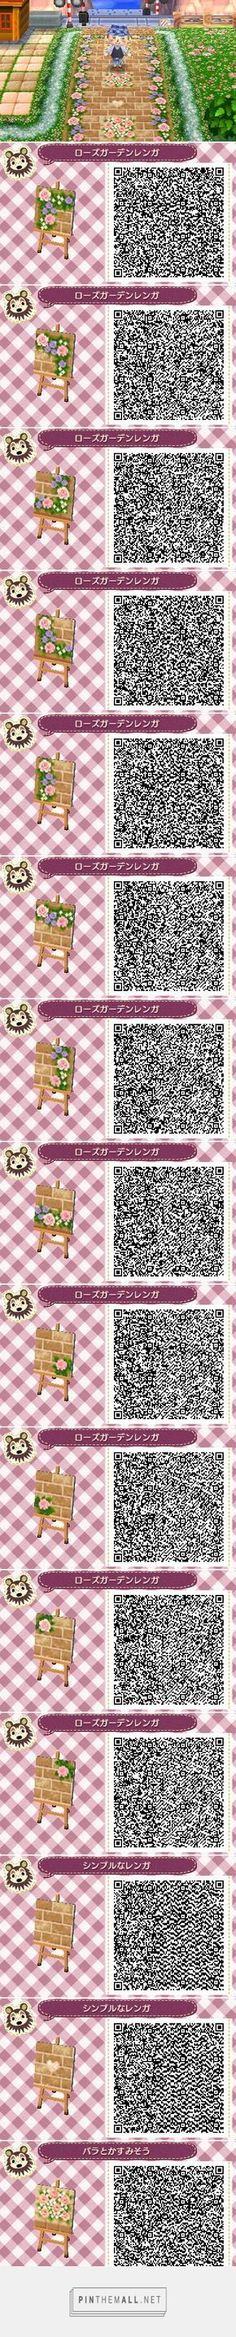 36 Best Town tunes (ACNL) images in 2014 | Animal crossing town tune